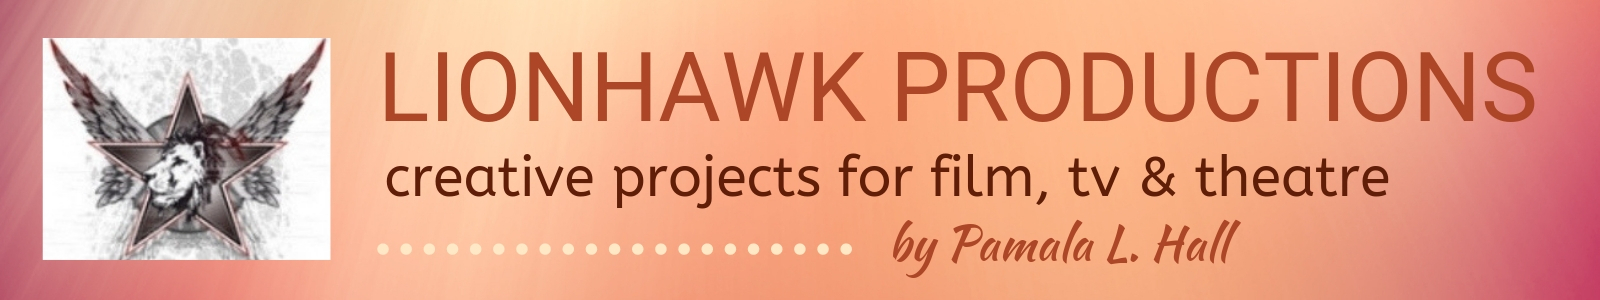 Lionhawk Productions